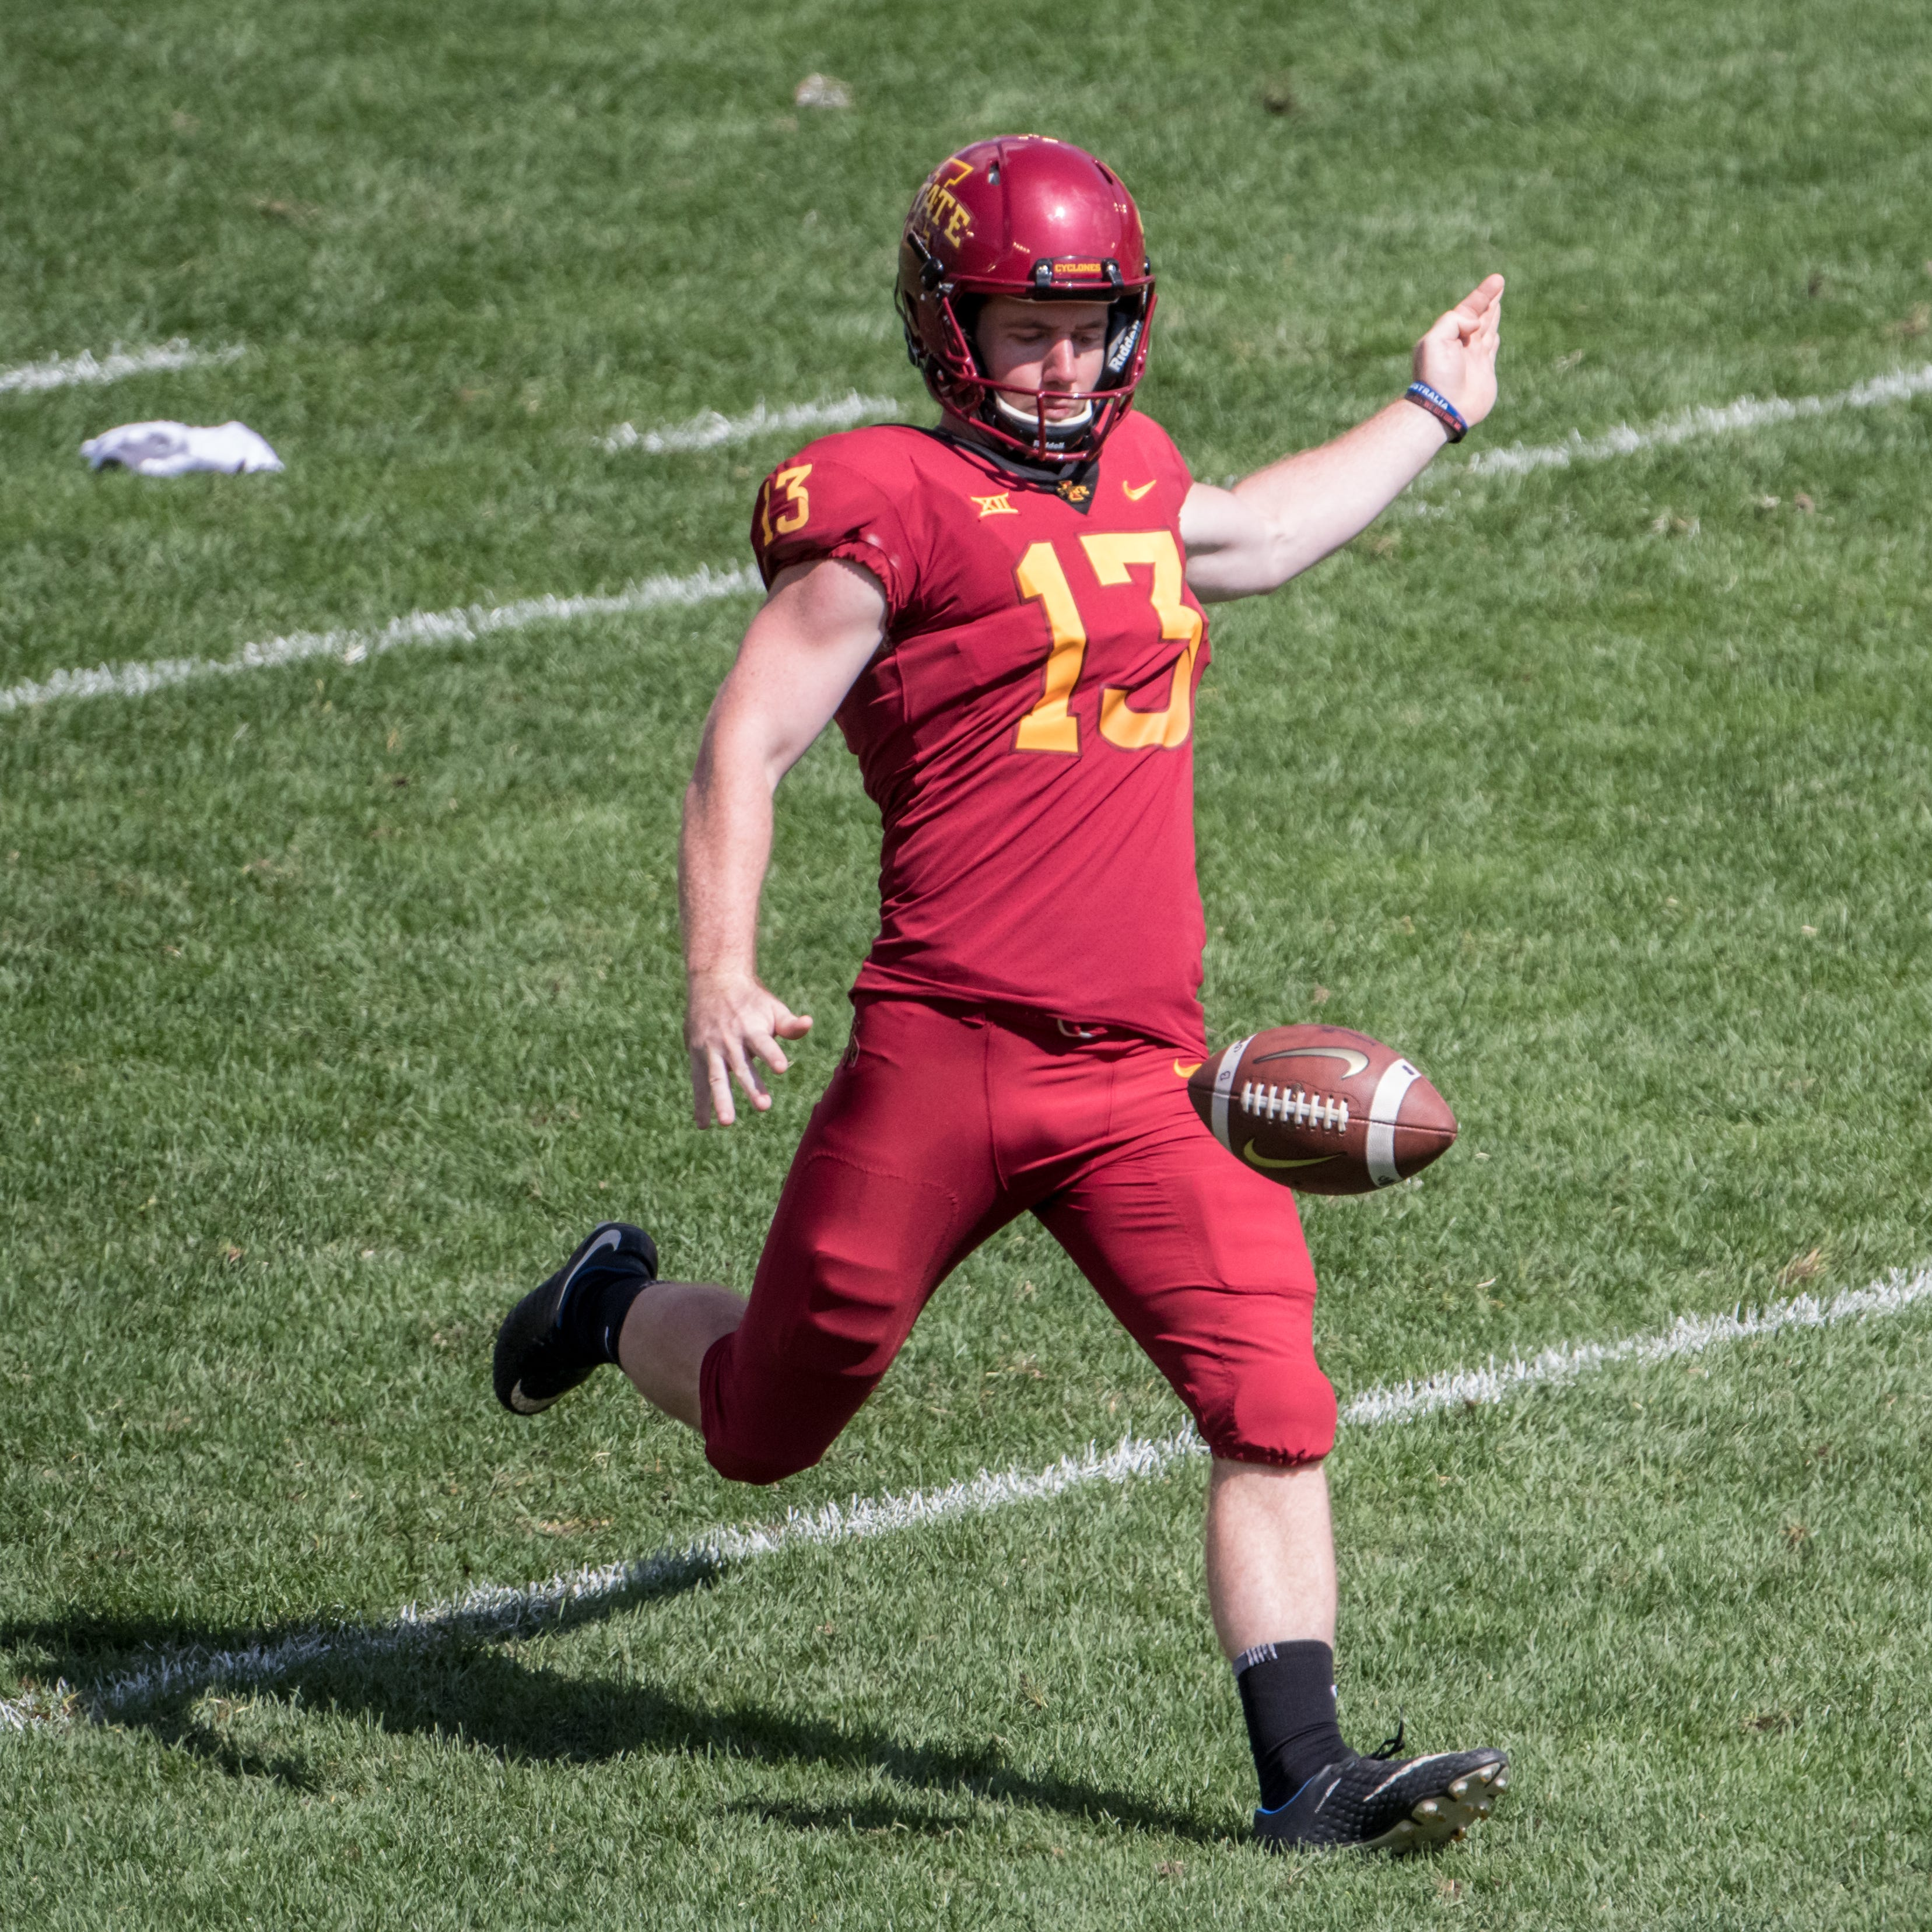 Talk from teammate helps turn around Iowa State punter Corey Dunn's season